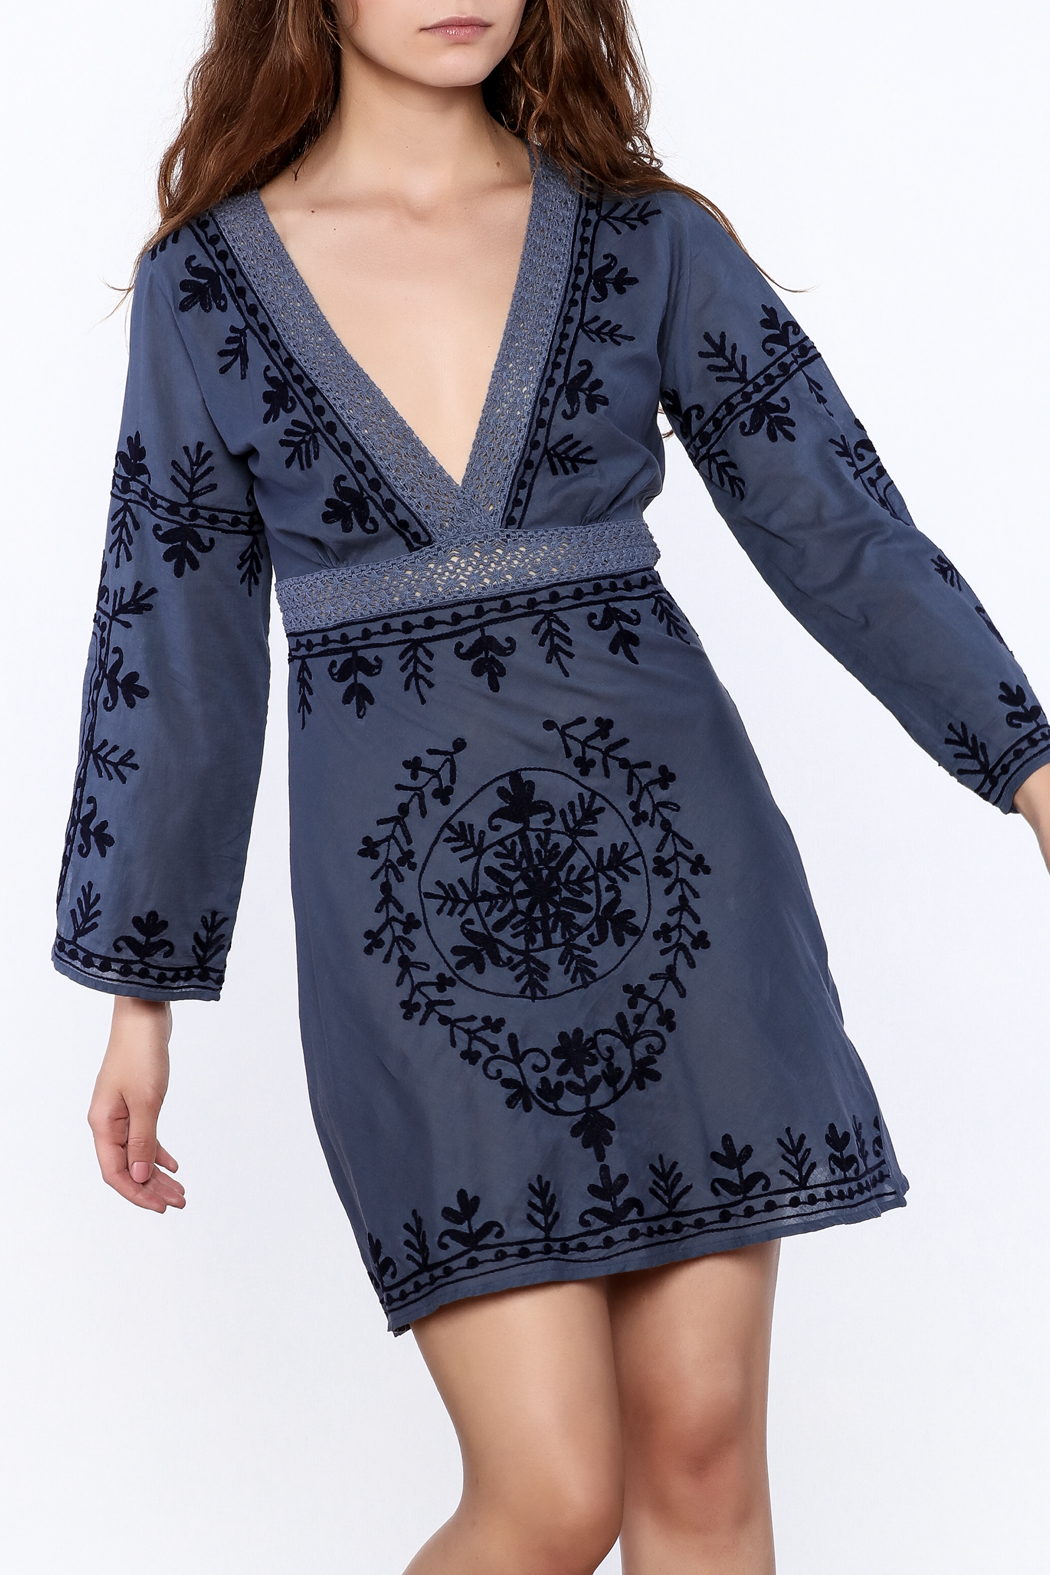 Debbie Katz Blue Embroidered Dress - Main Image